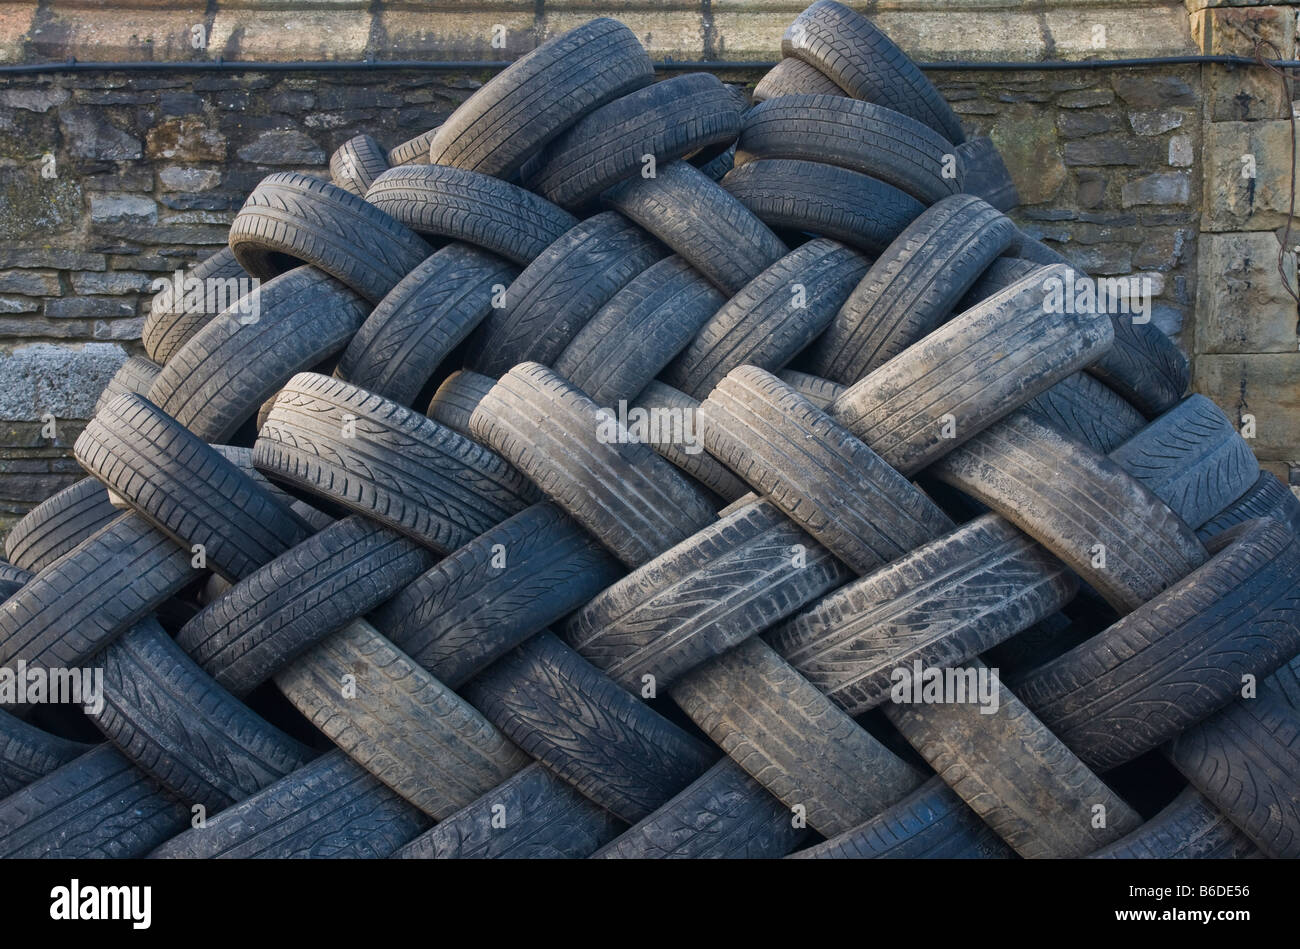 old tyres awaiting disposal or recycling - Stock Image